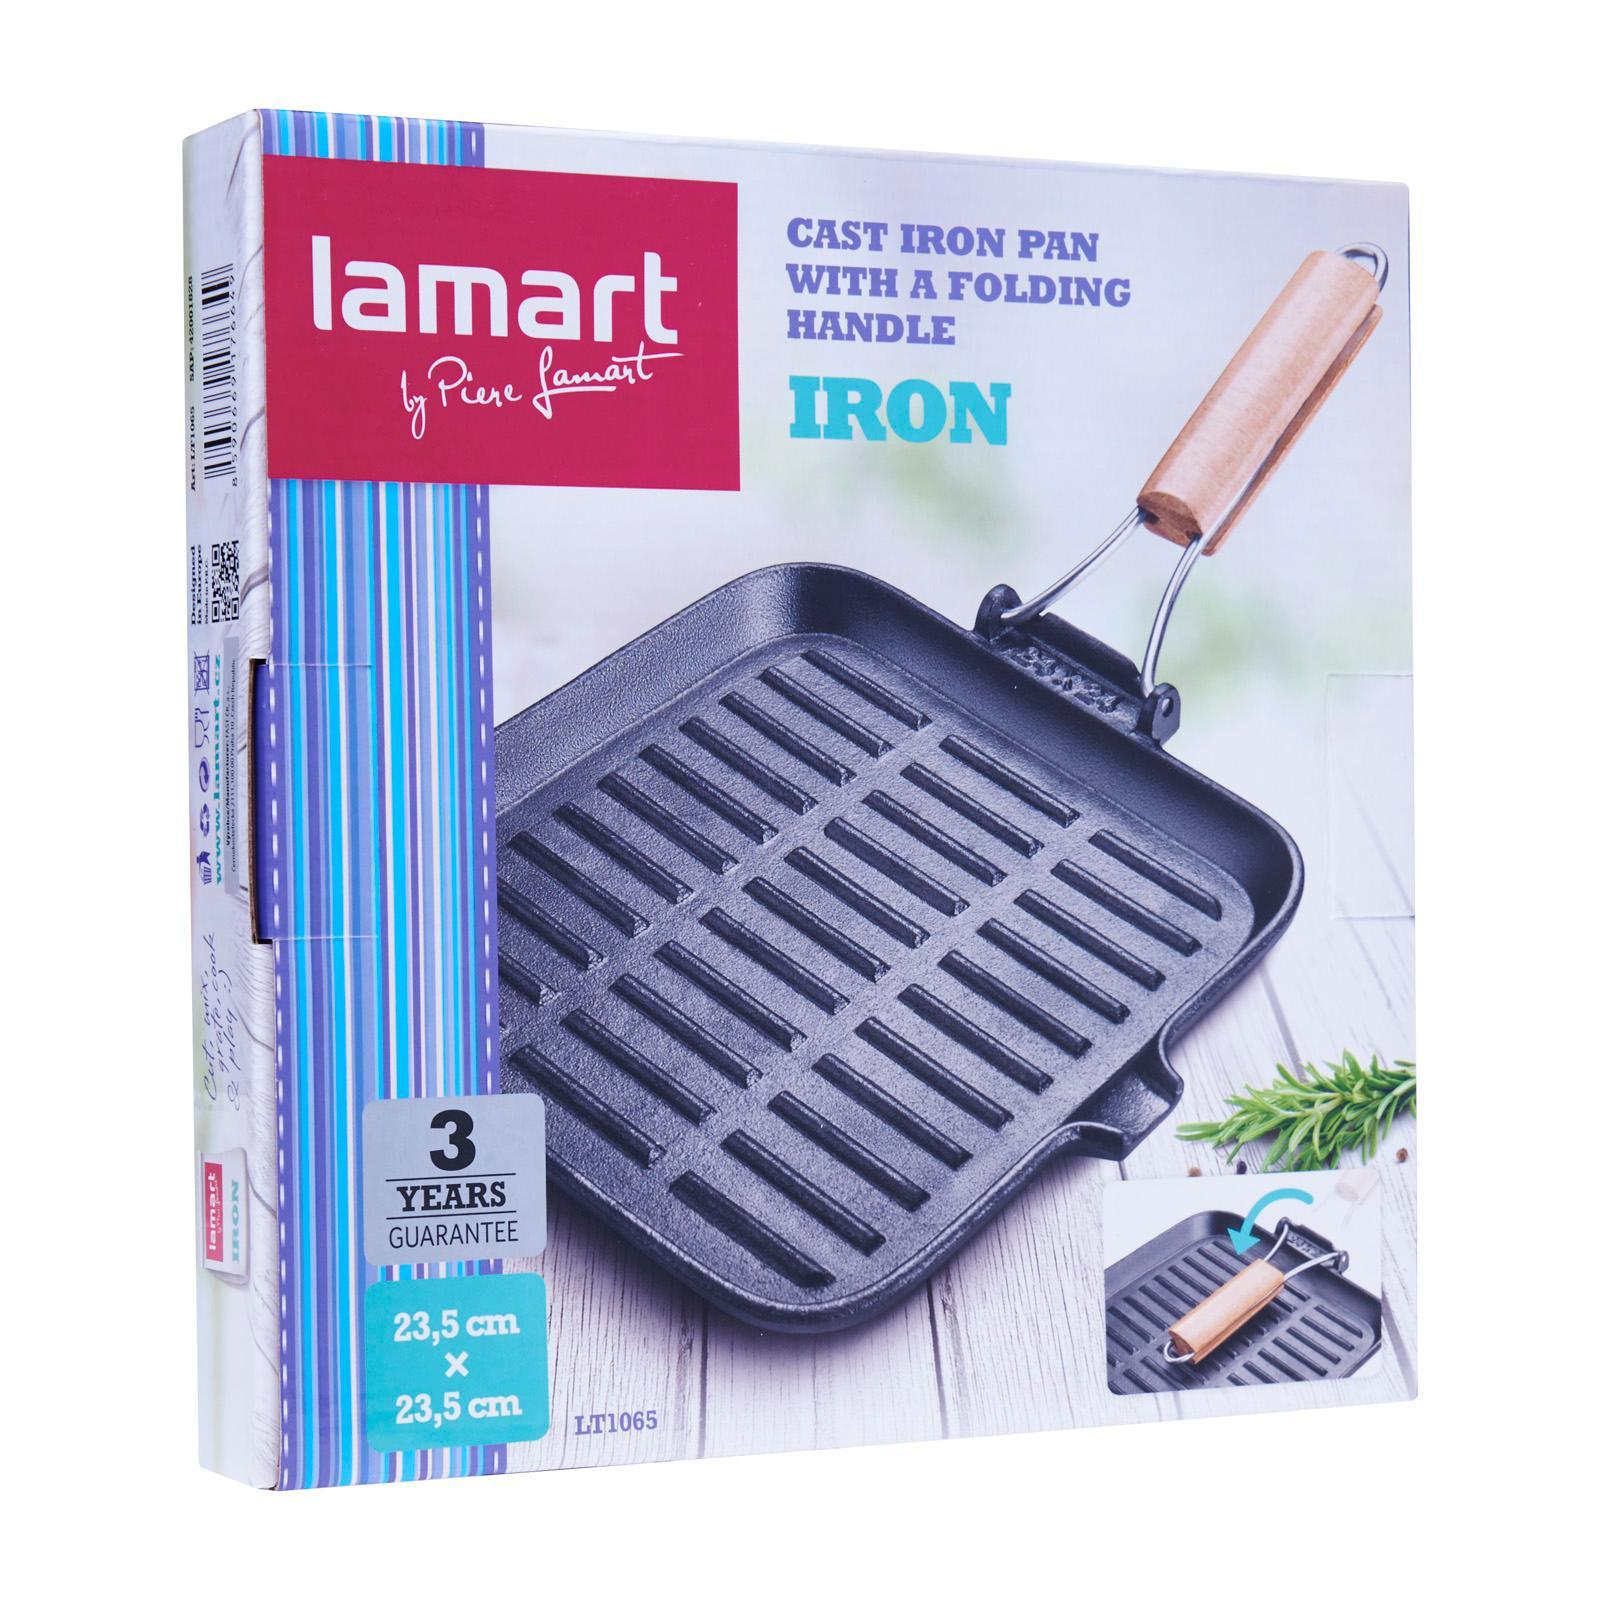 Lamart Induction Ready Grill Fry Pan 23.5X23.5Cm